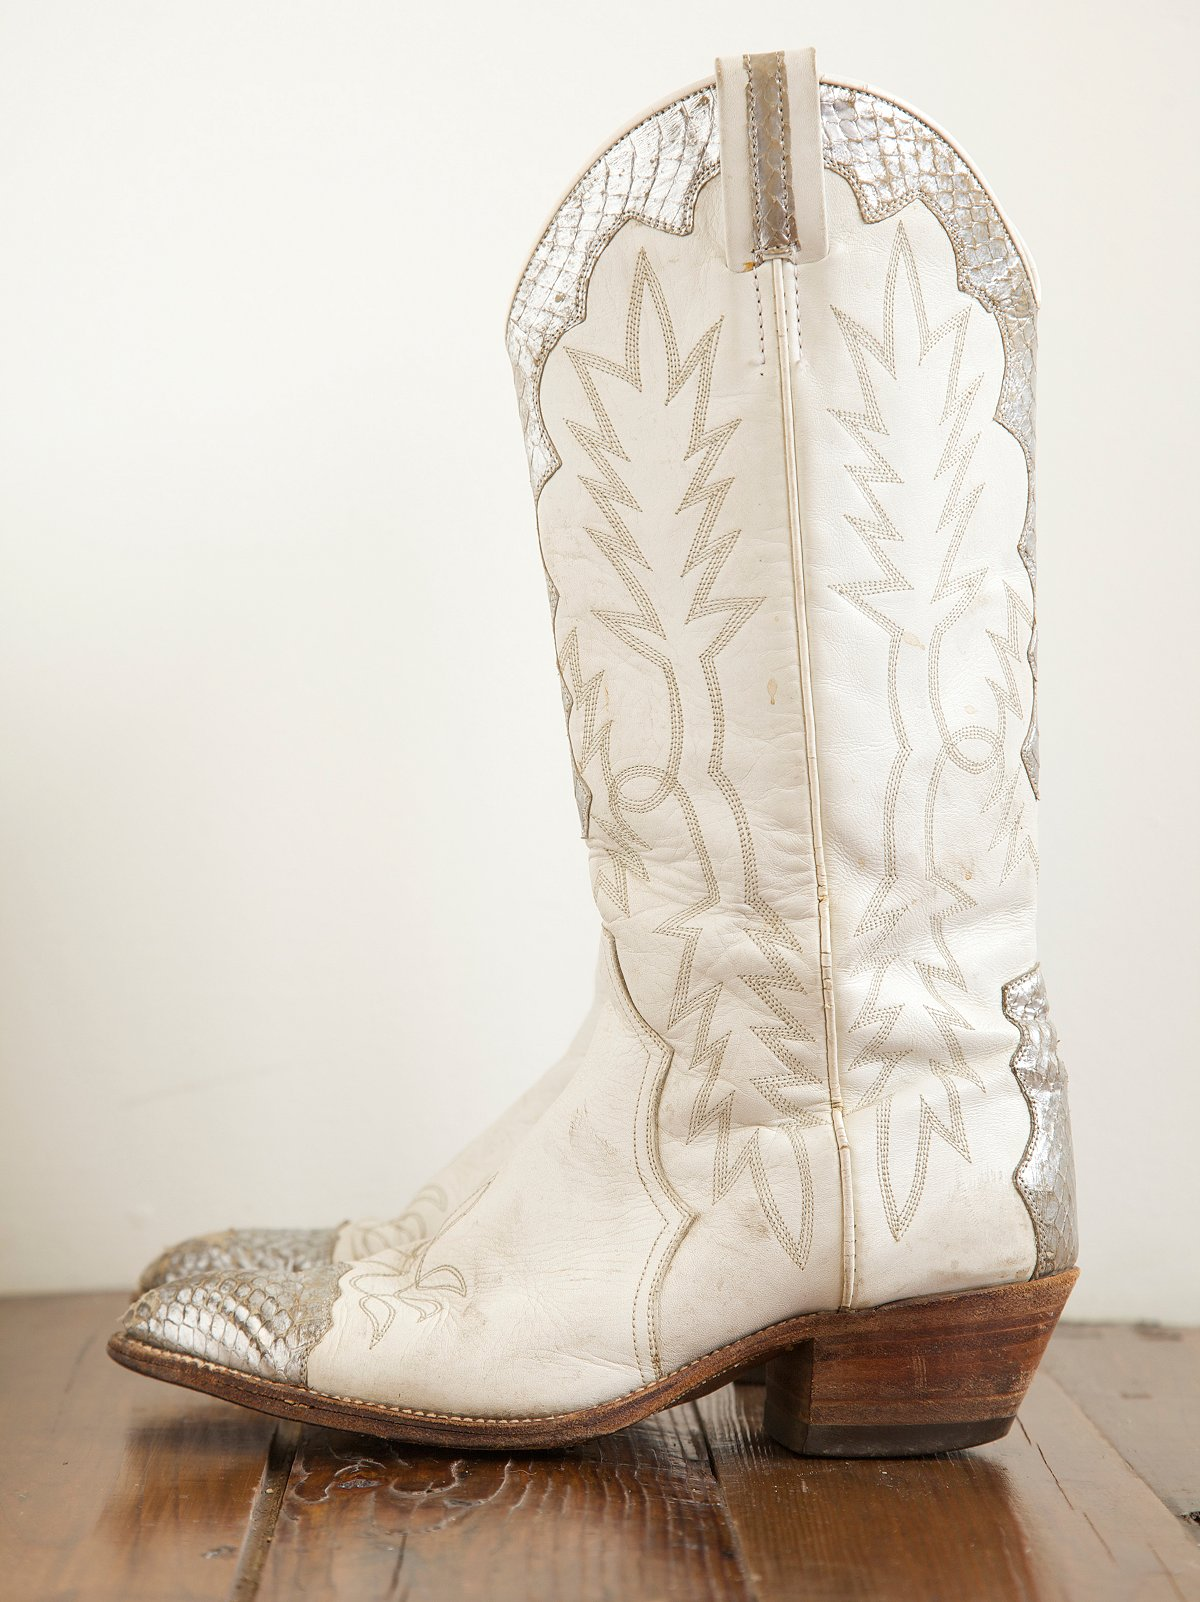 Vintage White Boots with Snakeskin